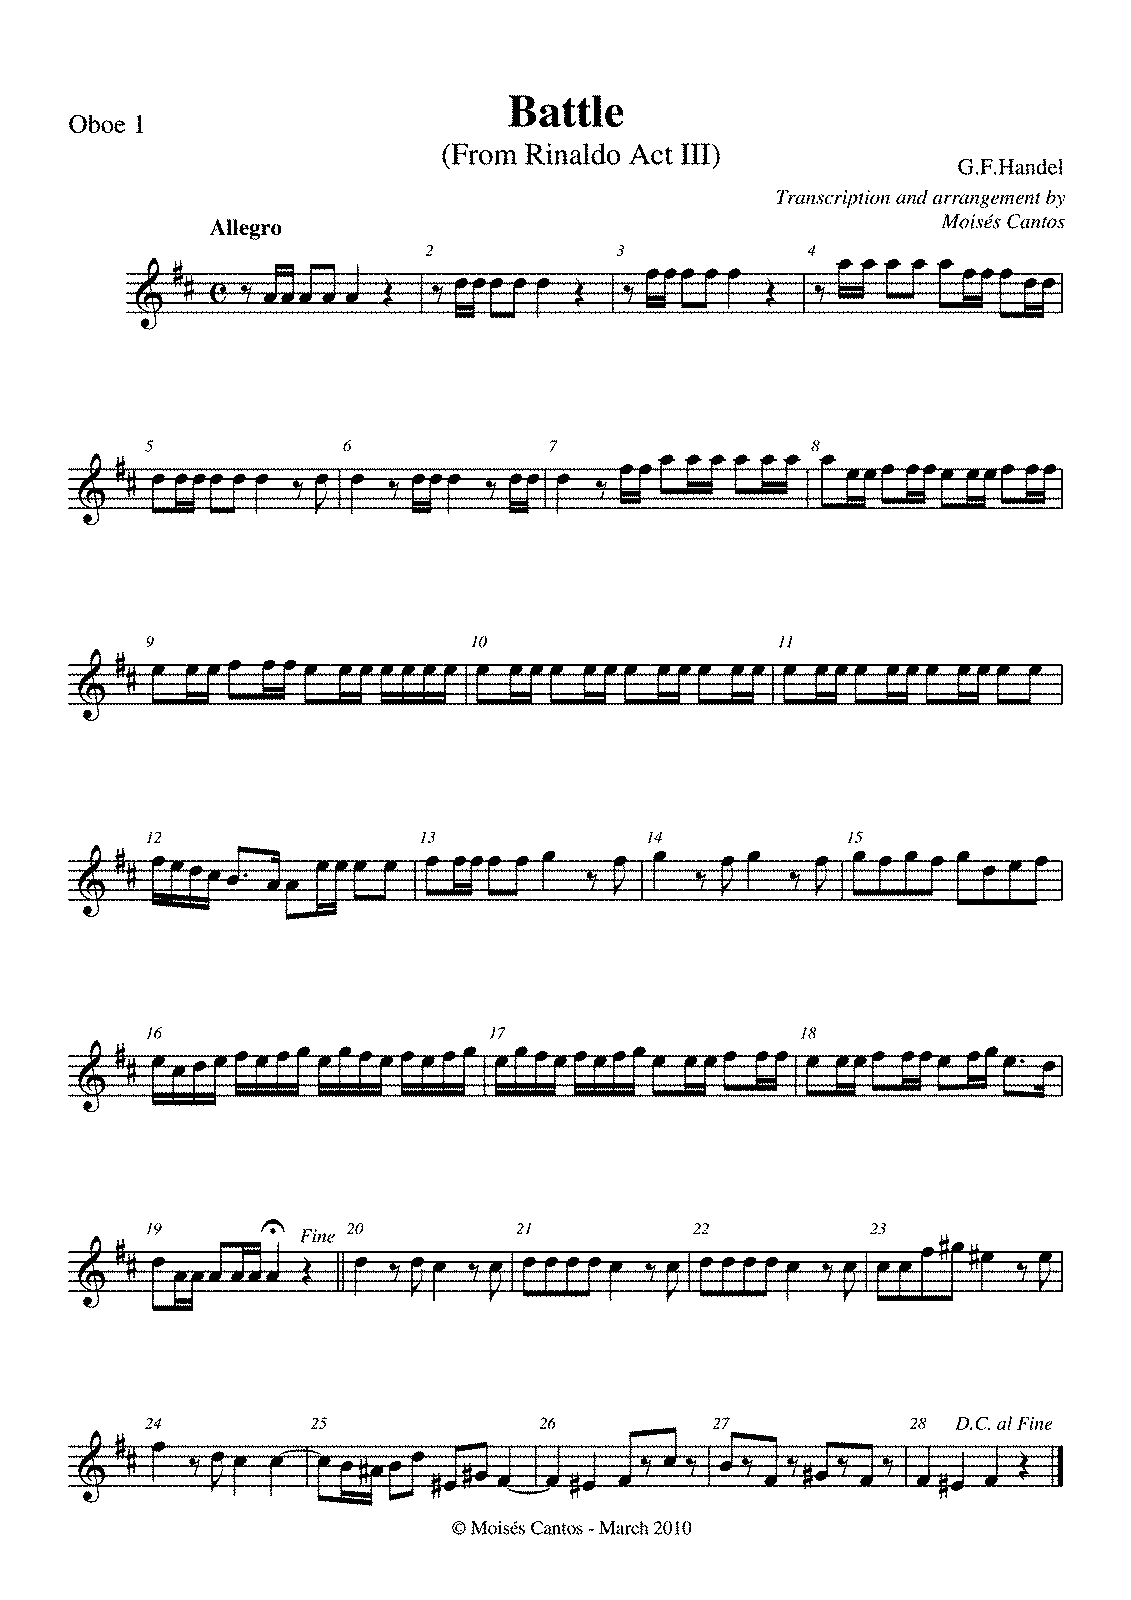 PMLP44807-Battle from Rinaldo - Oboe 1.pdf